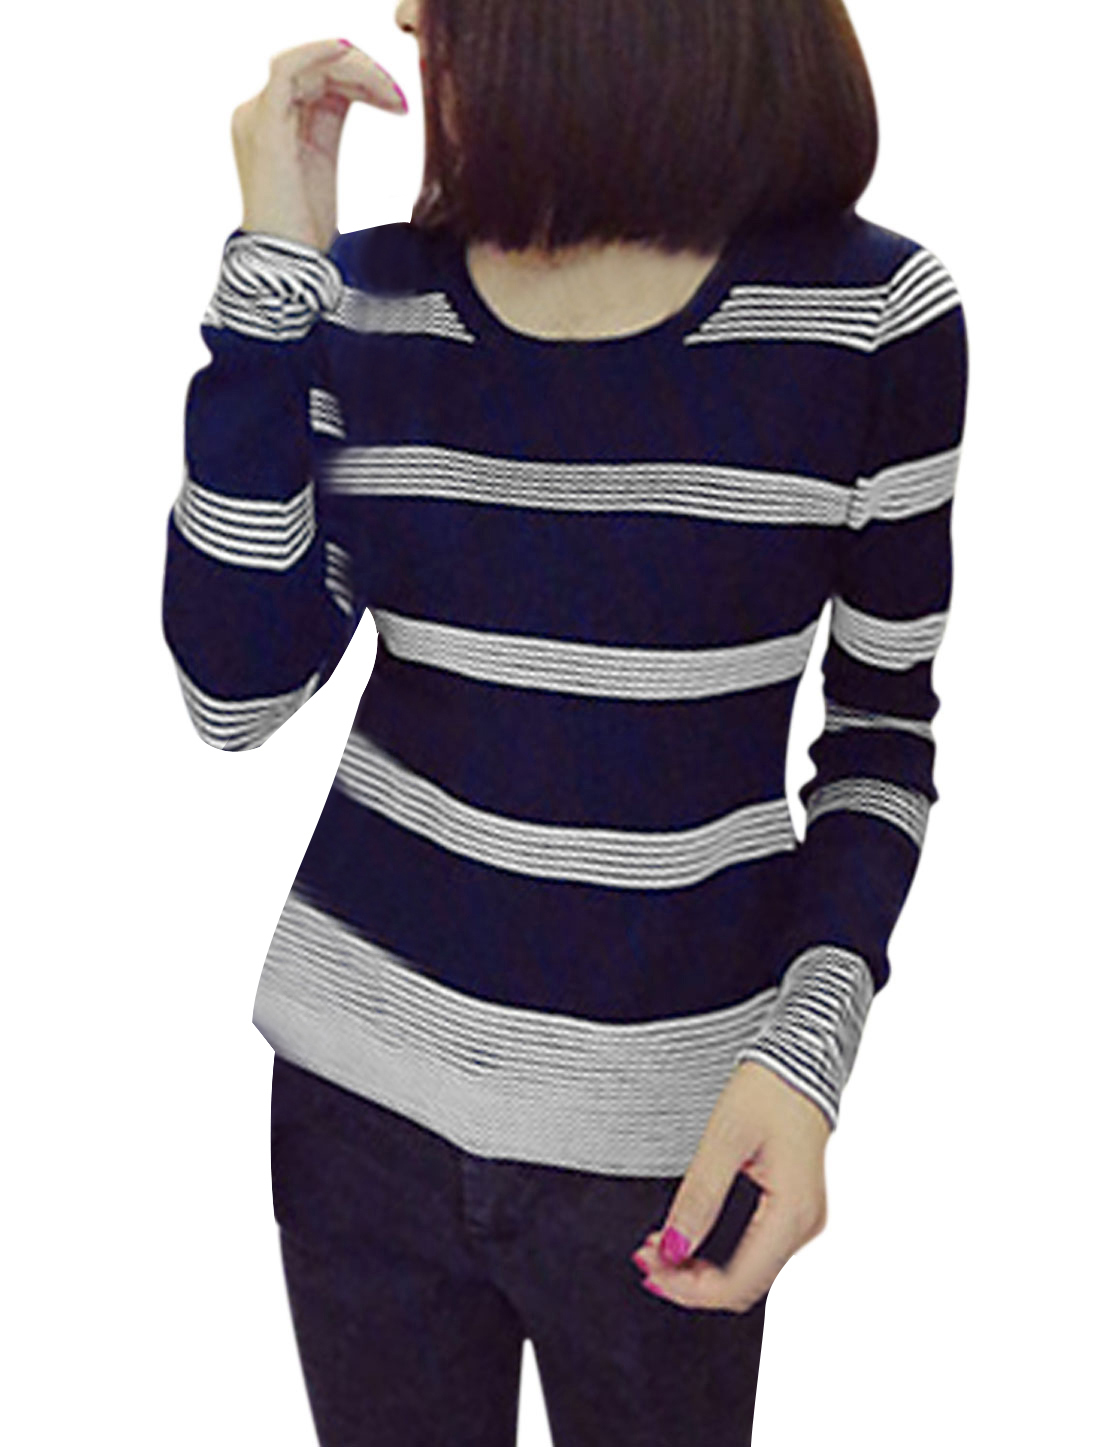 Round Neckline Stripes Casaul Knit Top for Women Navy Blue XS